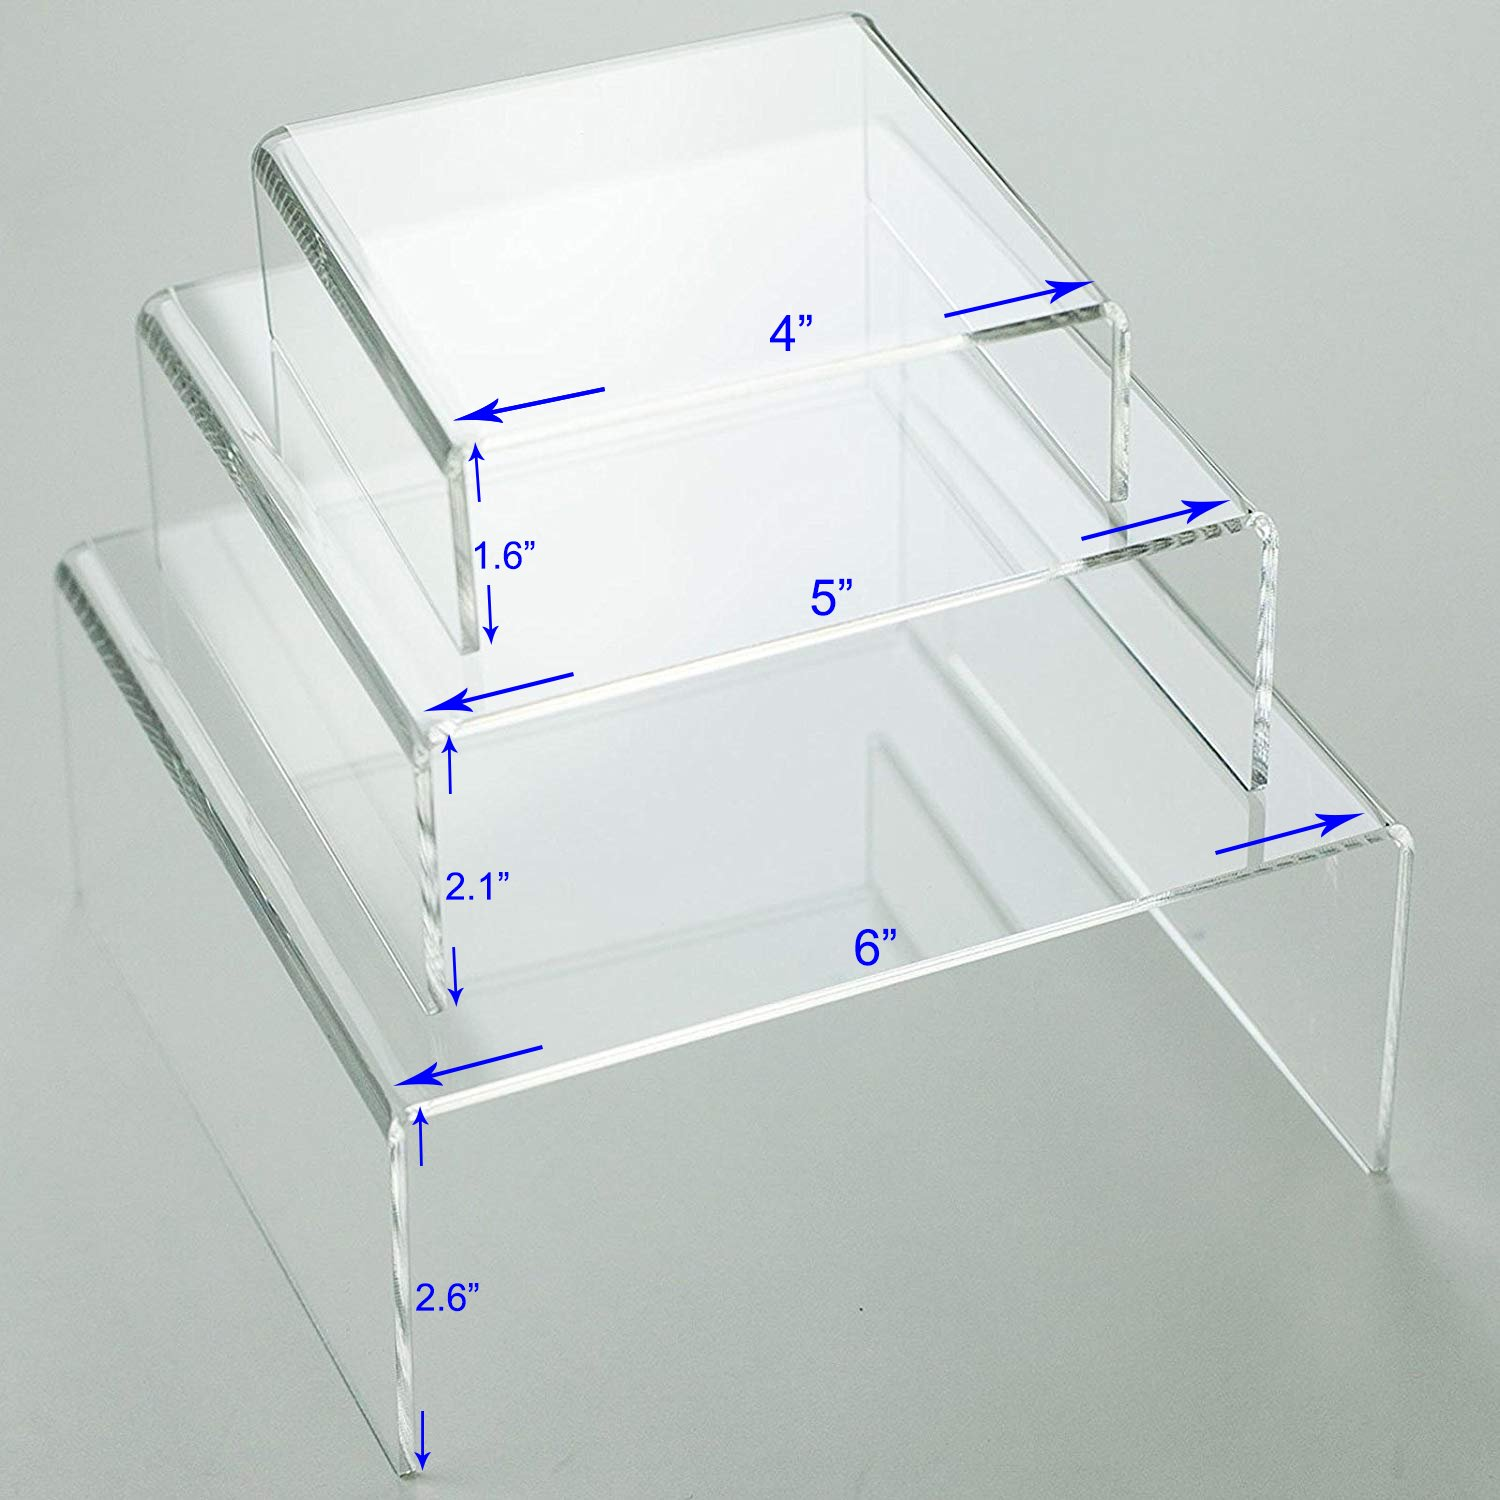 Huji Clear Medium Low Profile Set of 3 Acrylic Risers Display Stands (2 Set, Clear Acrylic Risers) by Huji (Image #4)